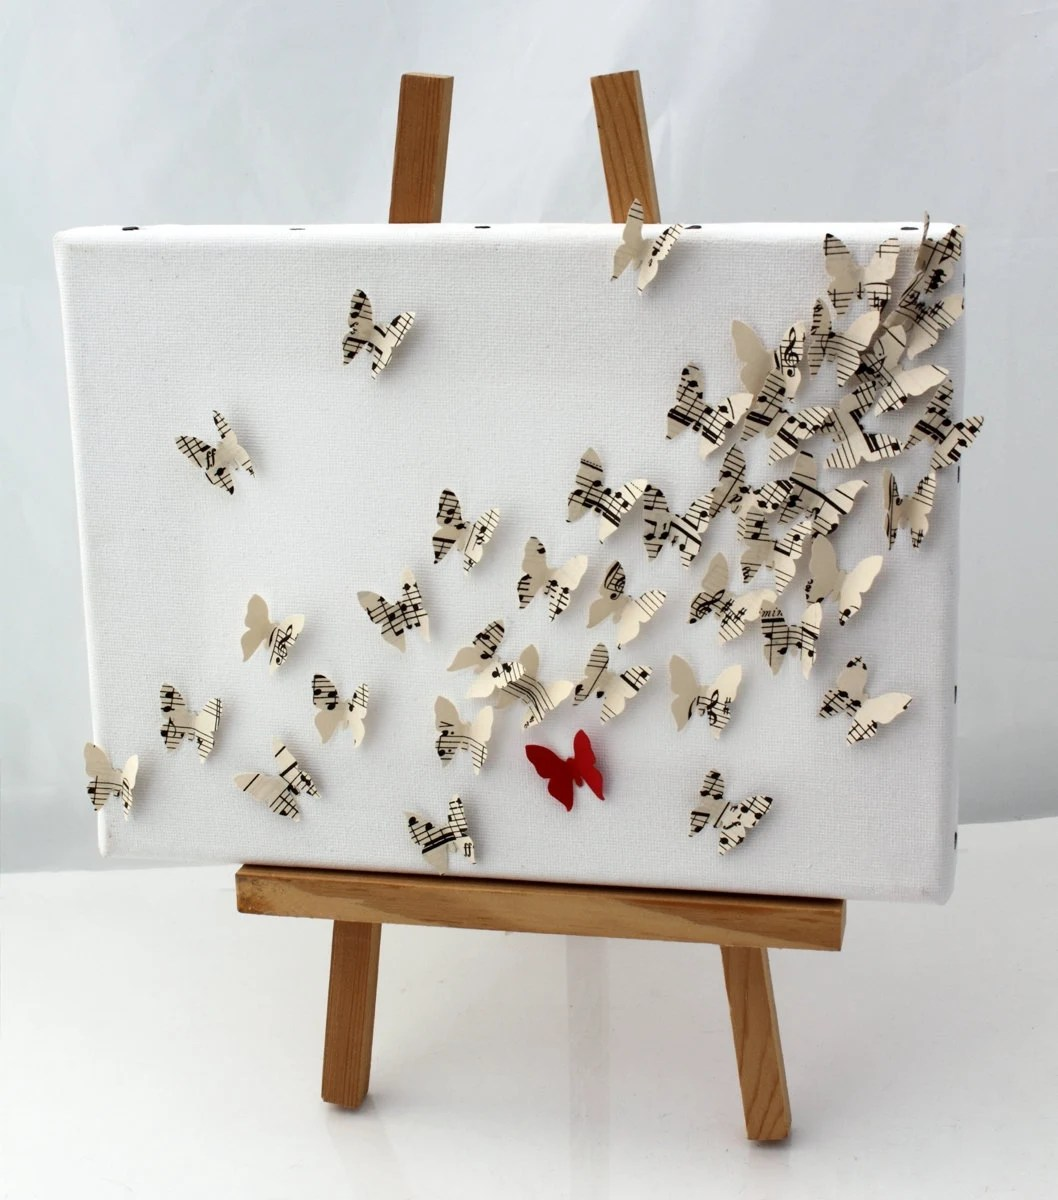 3D Butterfly Wall Art Collage On Canvas Upcycled Vintage